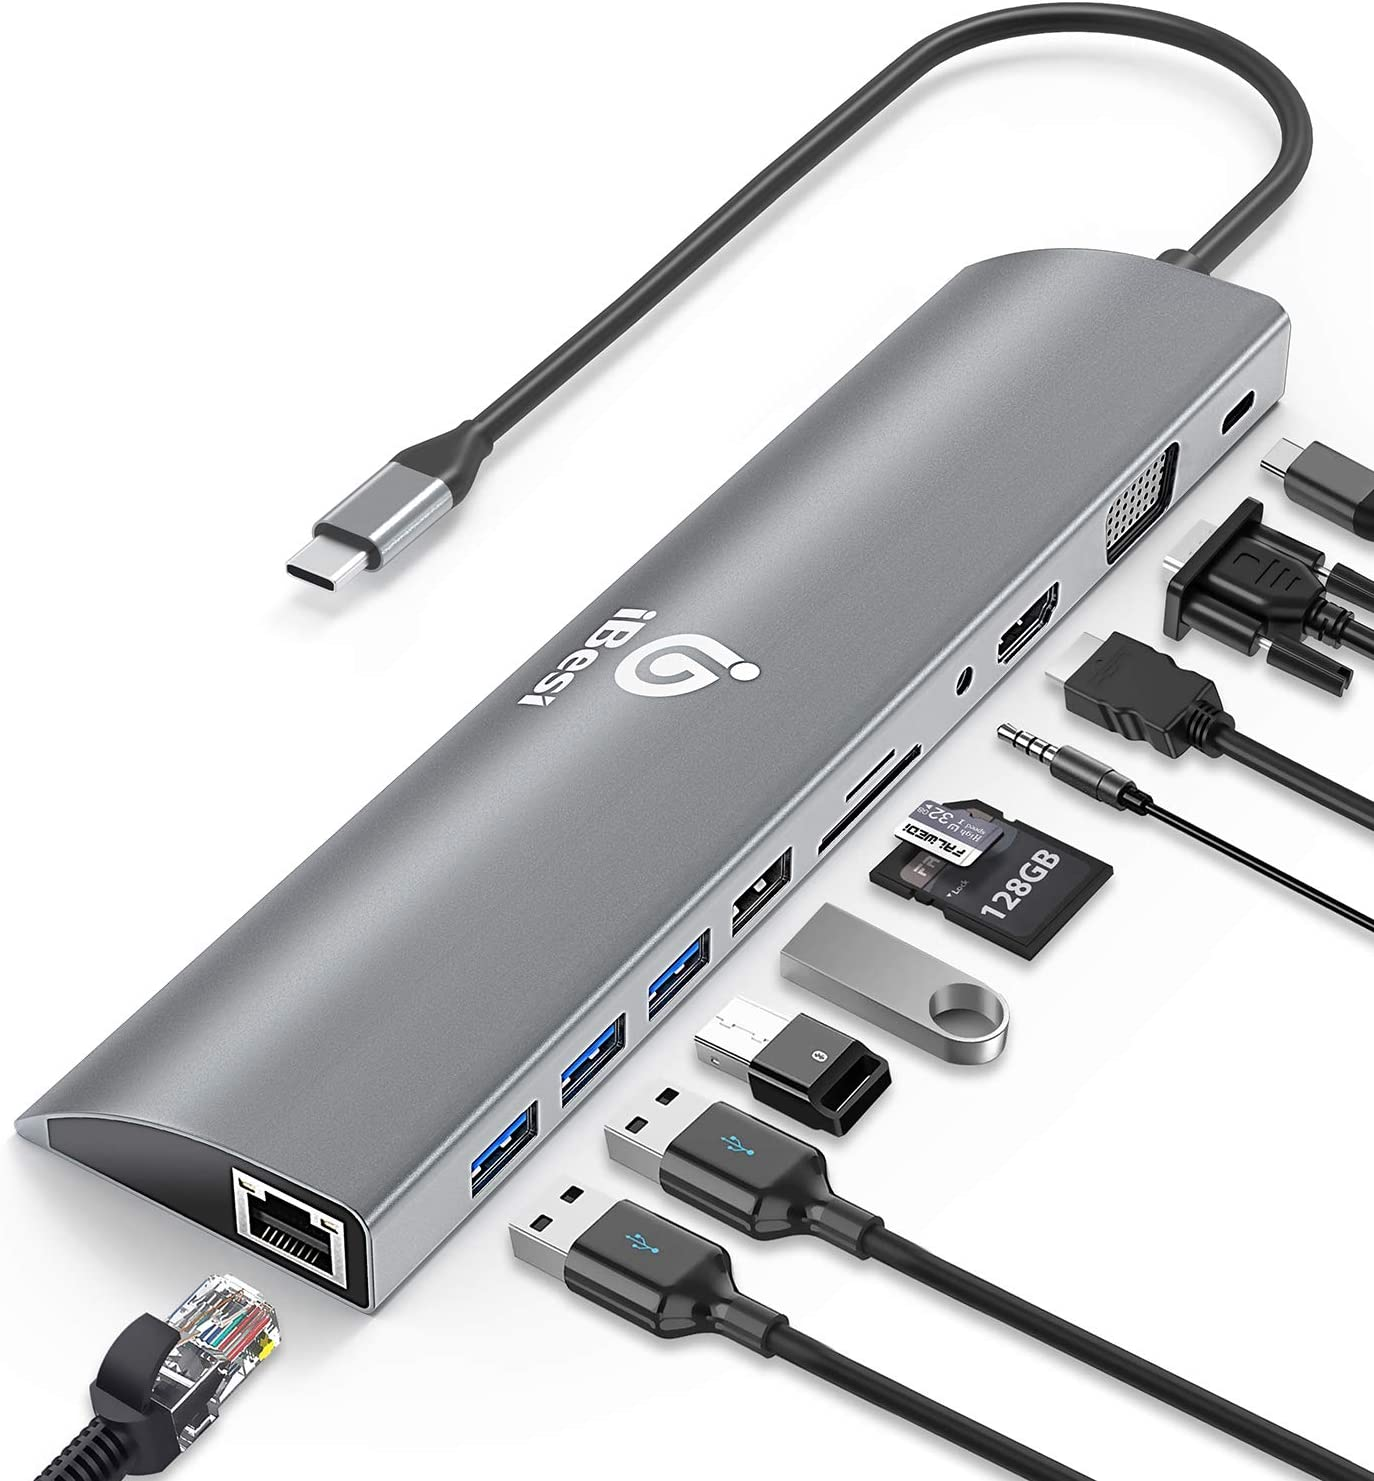 USB C Hub, iBesi 11 in 1 USB-C Laptop Docking Station with Gigabit Ethernet Port 30CM Cable, 4K HDMI, VGA, 3 USB3.0, 1 USB2.0, SD/TF Cards Reader, USB-C PD 3.0, Audio Only for MacBook, iPad, Dell